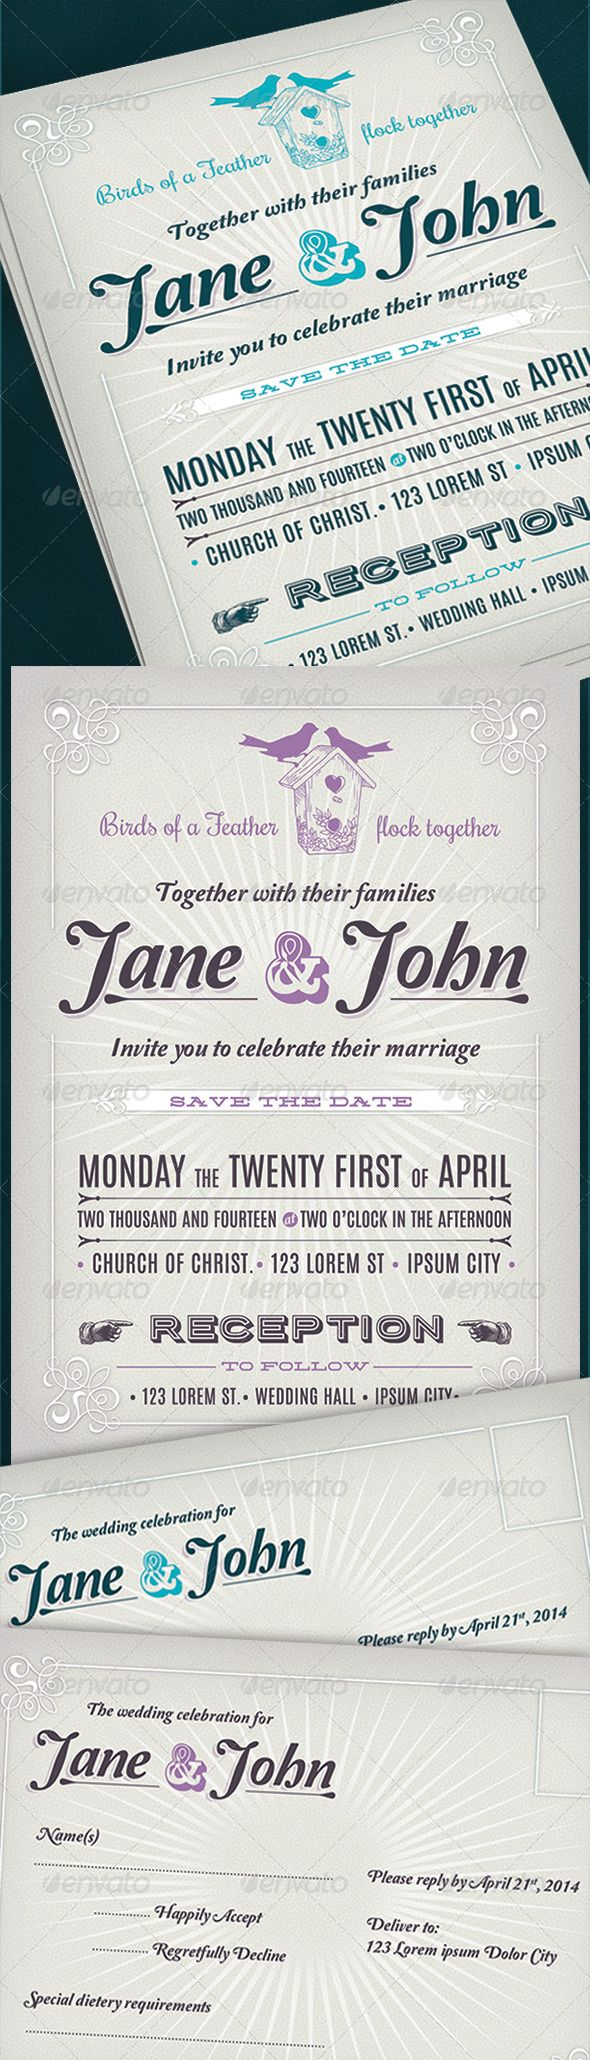 Best 25+ Retro wedding invitations ideas on Pinterest | Retro ...